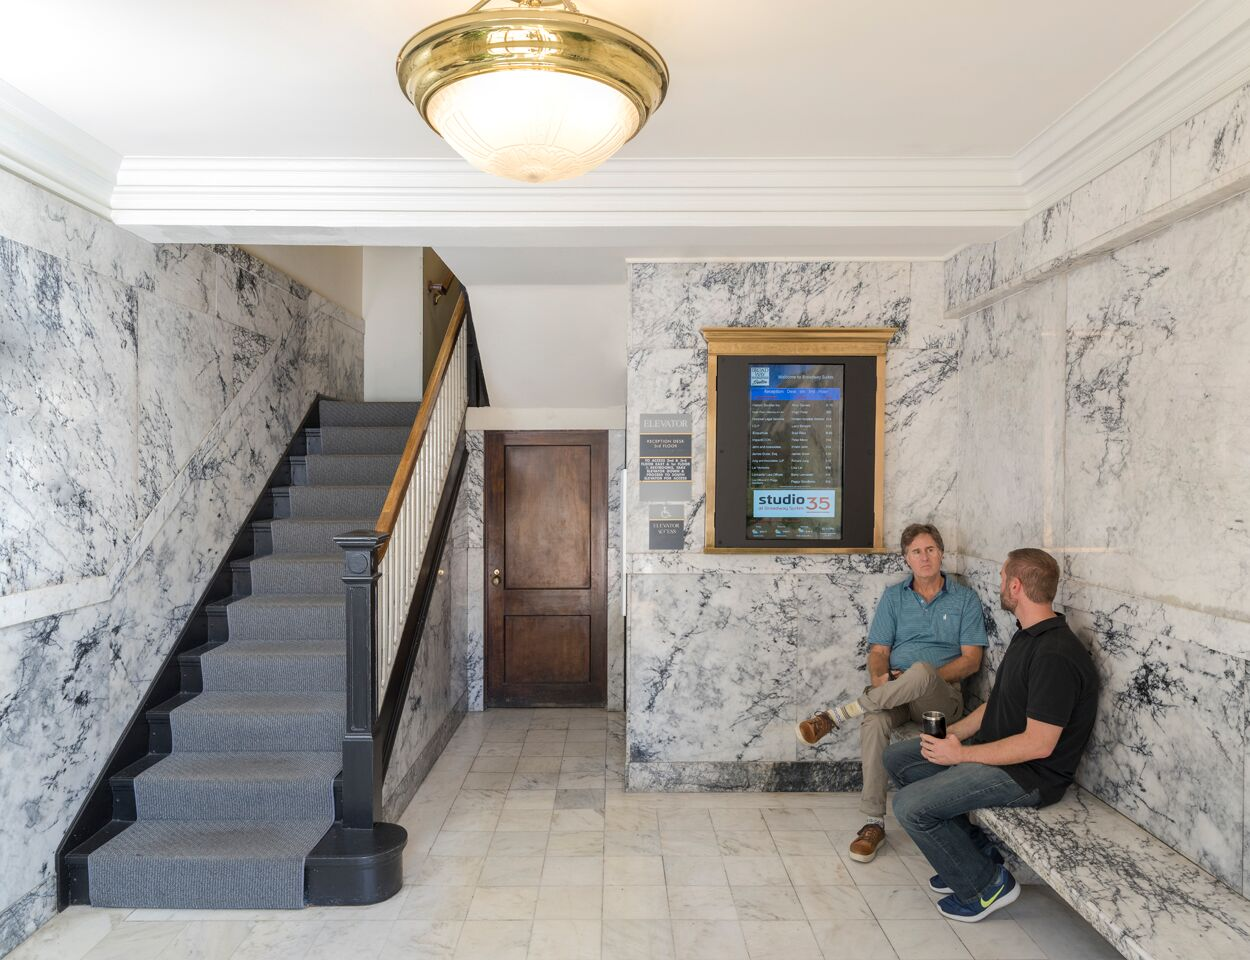 two men talking on bench in building lobby